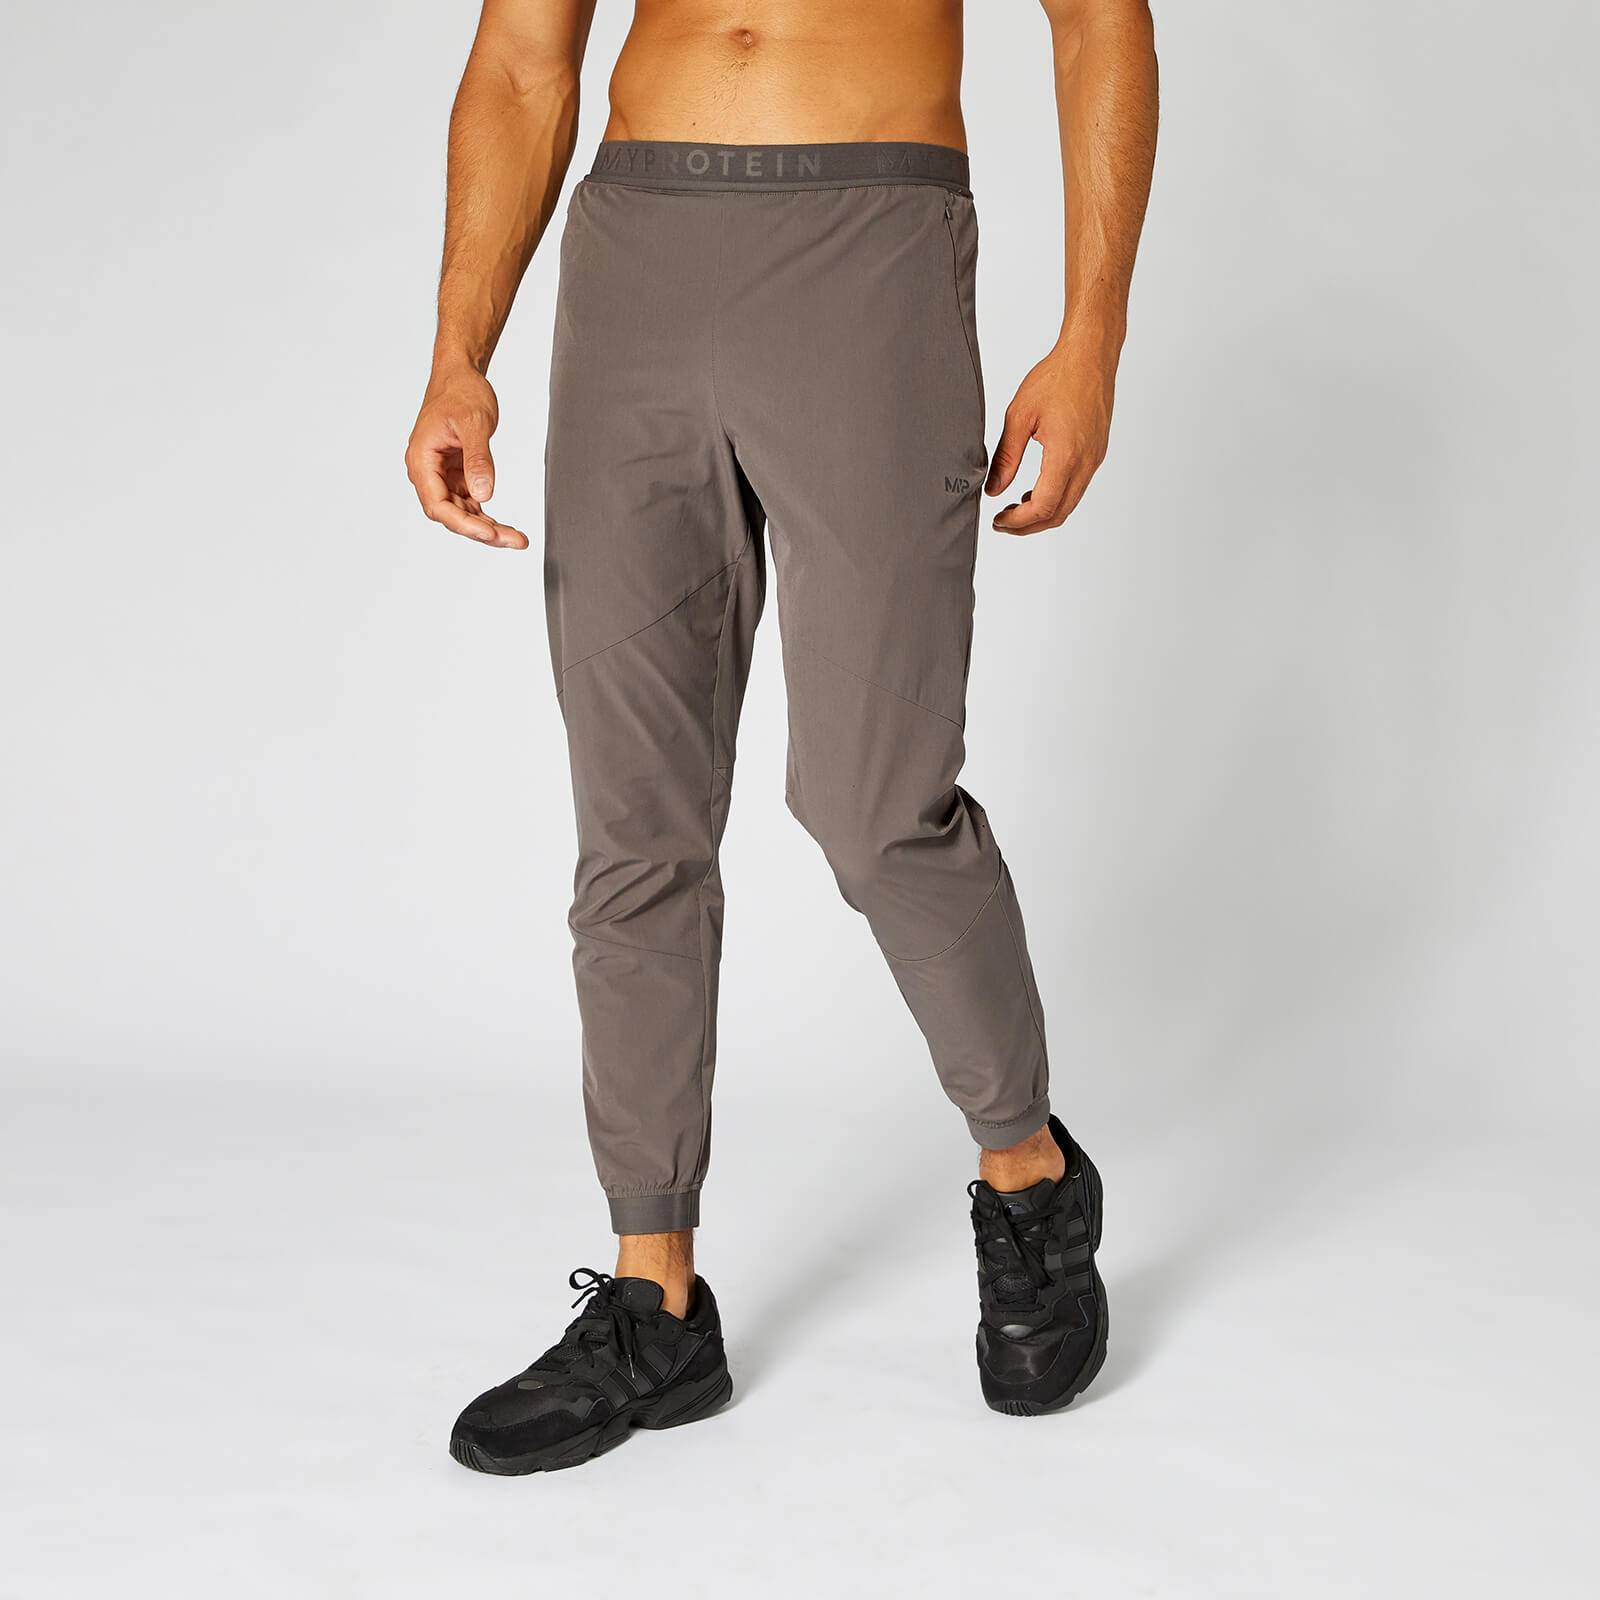 Myprotein MP Pace Joggers - Driftwood - XXL